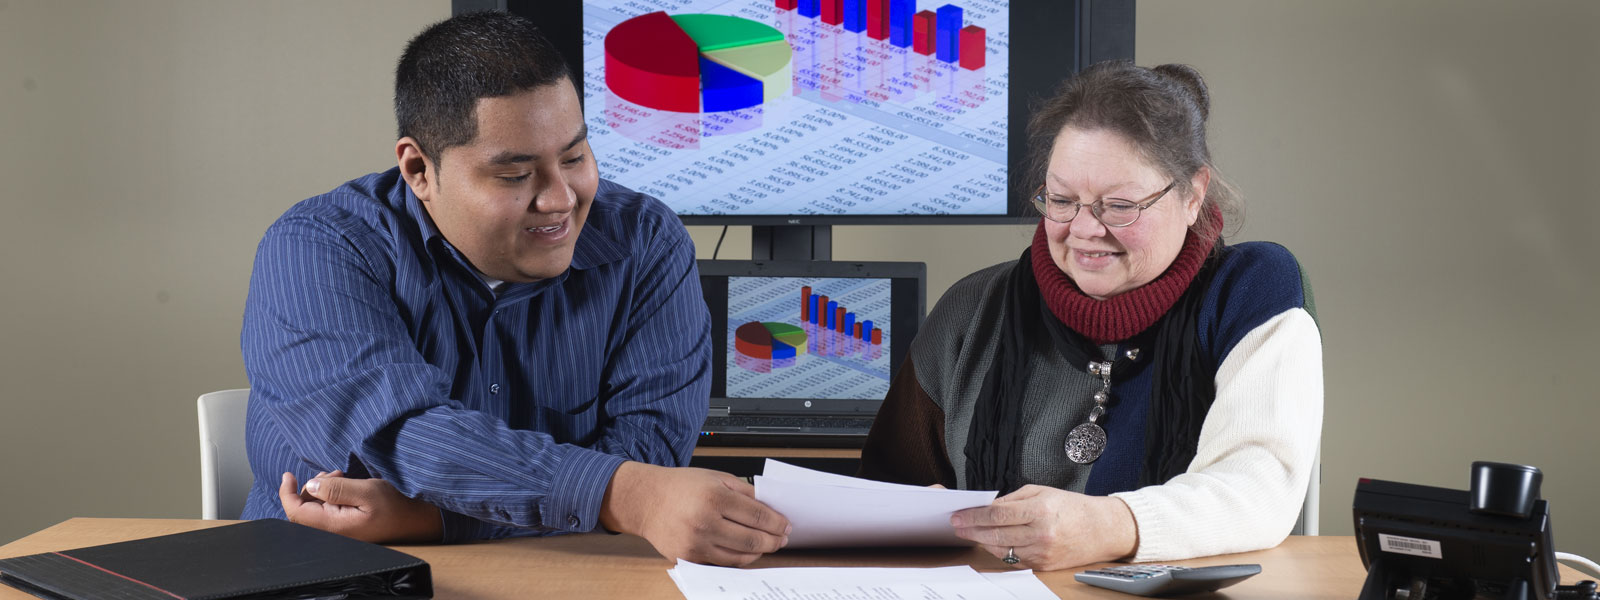 Two people sitting at a desk going over document together with diagram on projection screen in background.